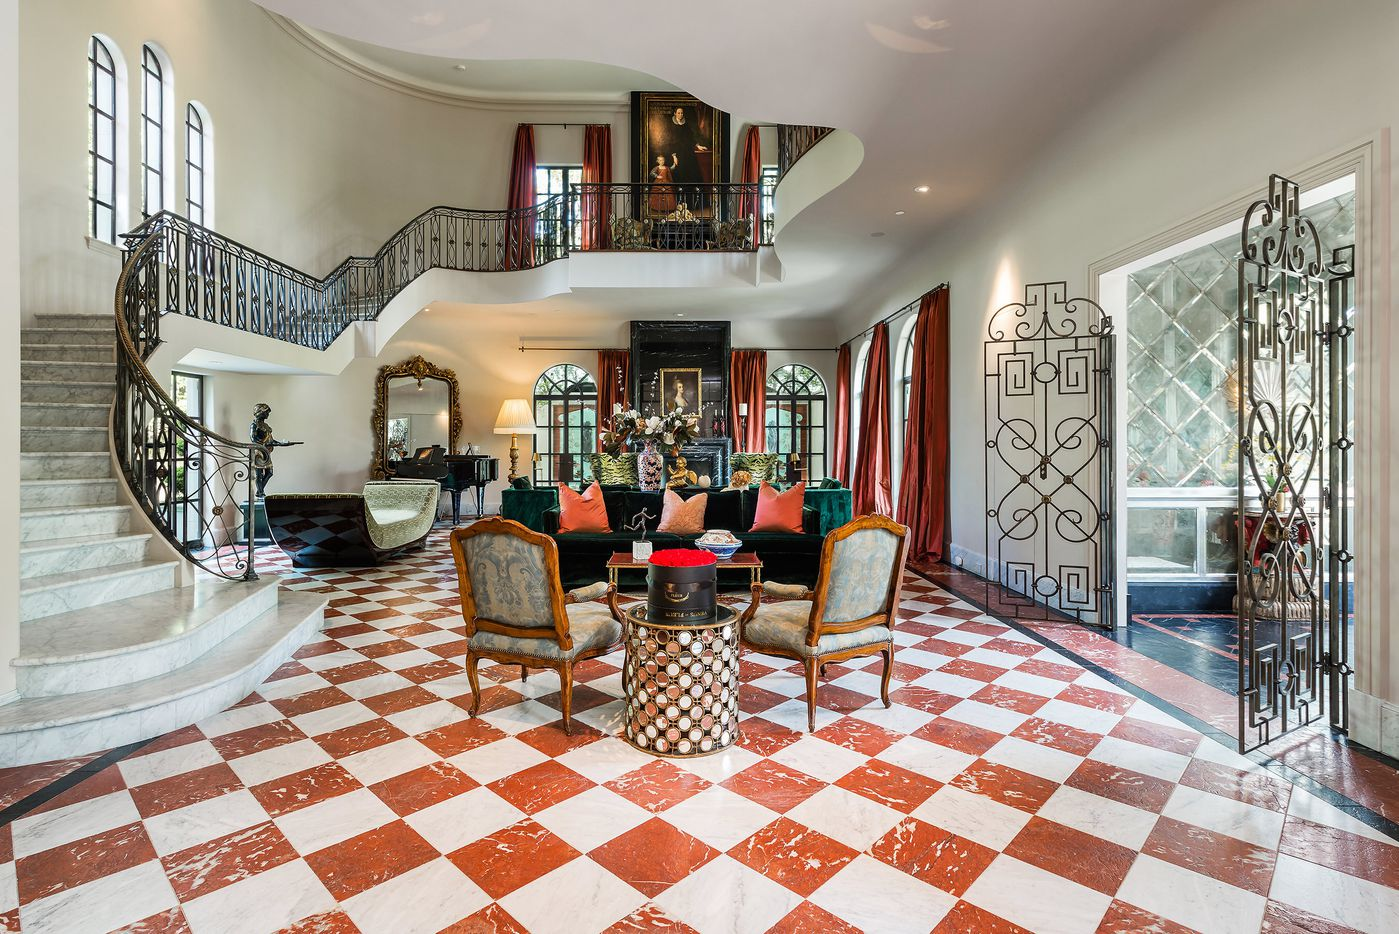 Take a look at the home at 4201 Edmondson Ave. in Highland Park.